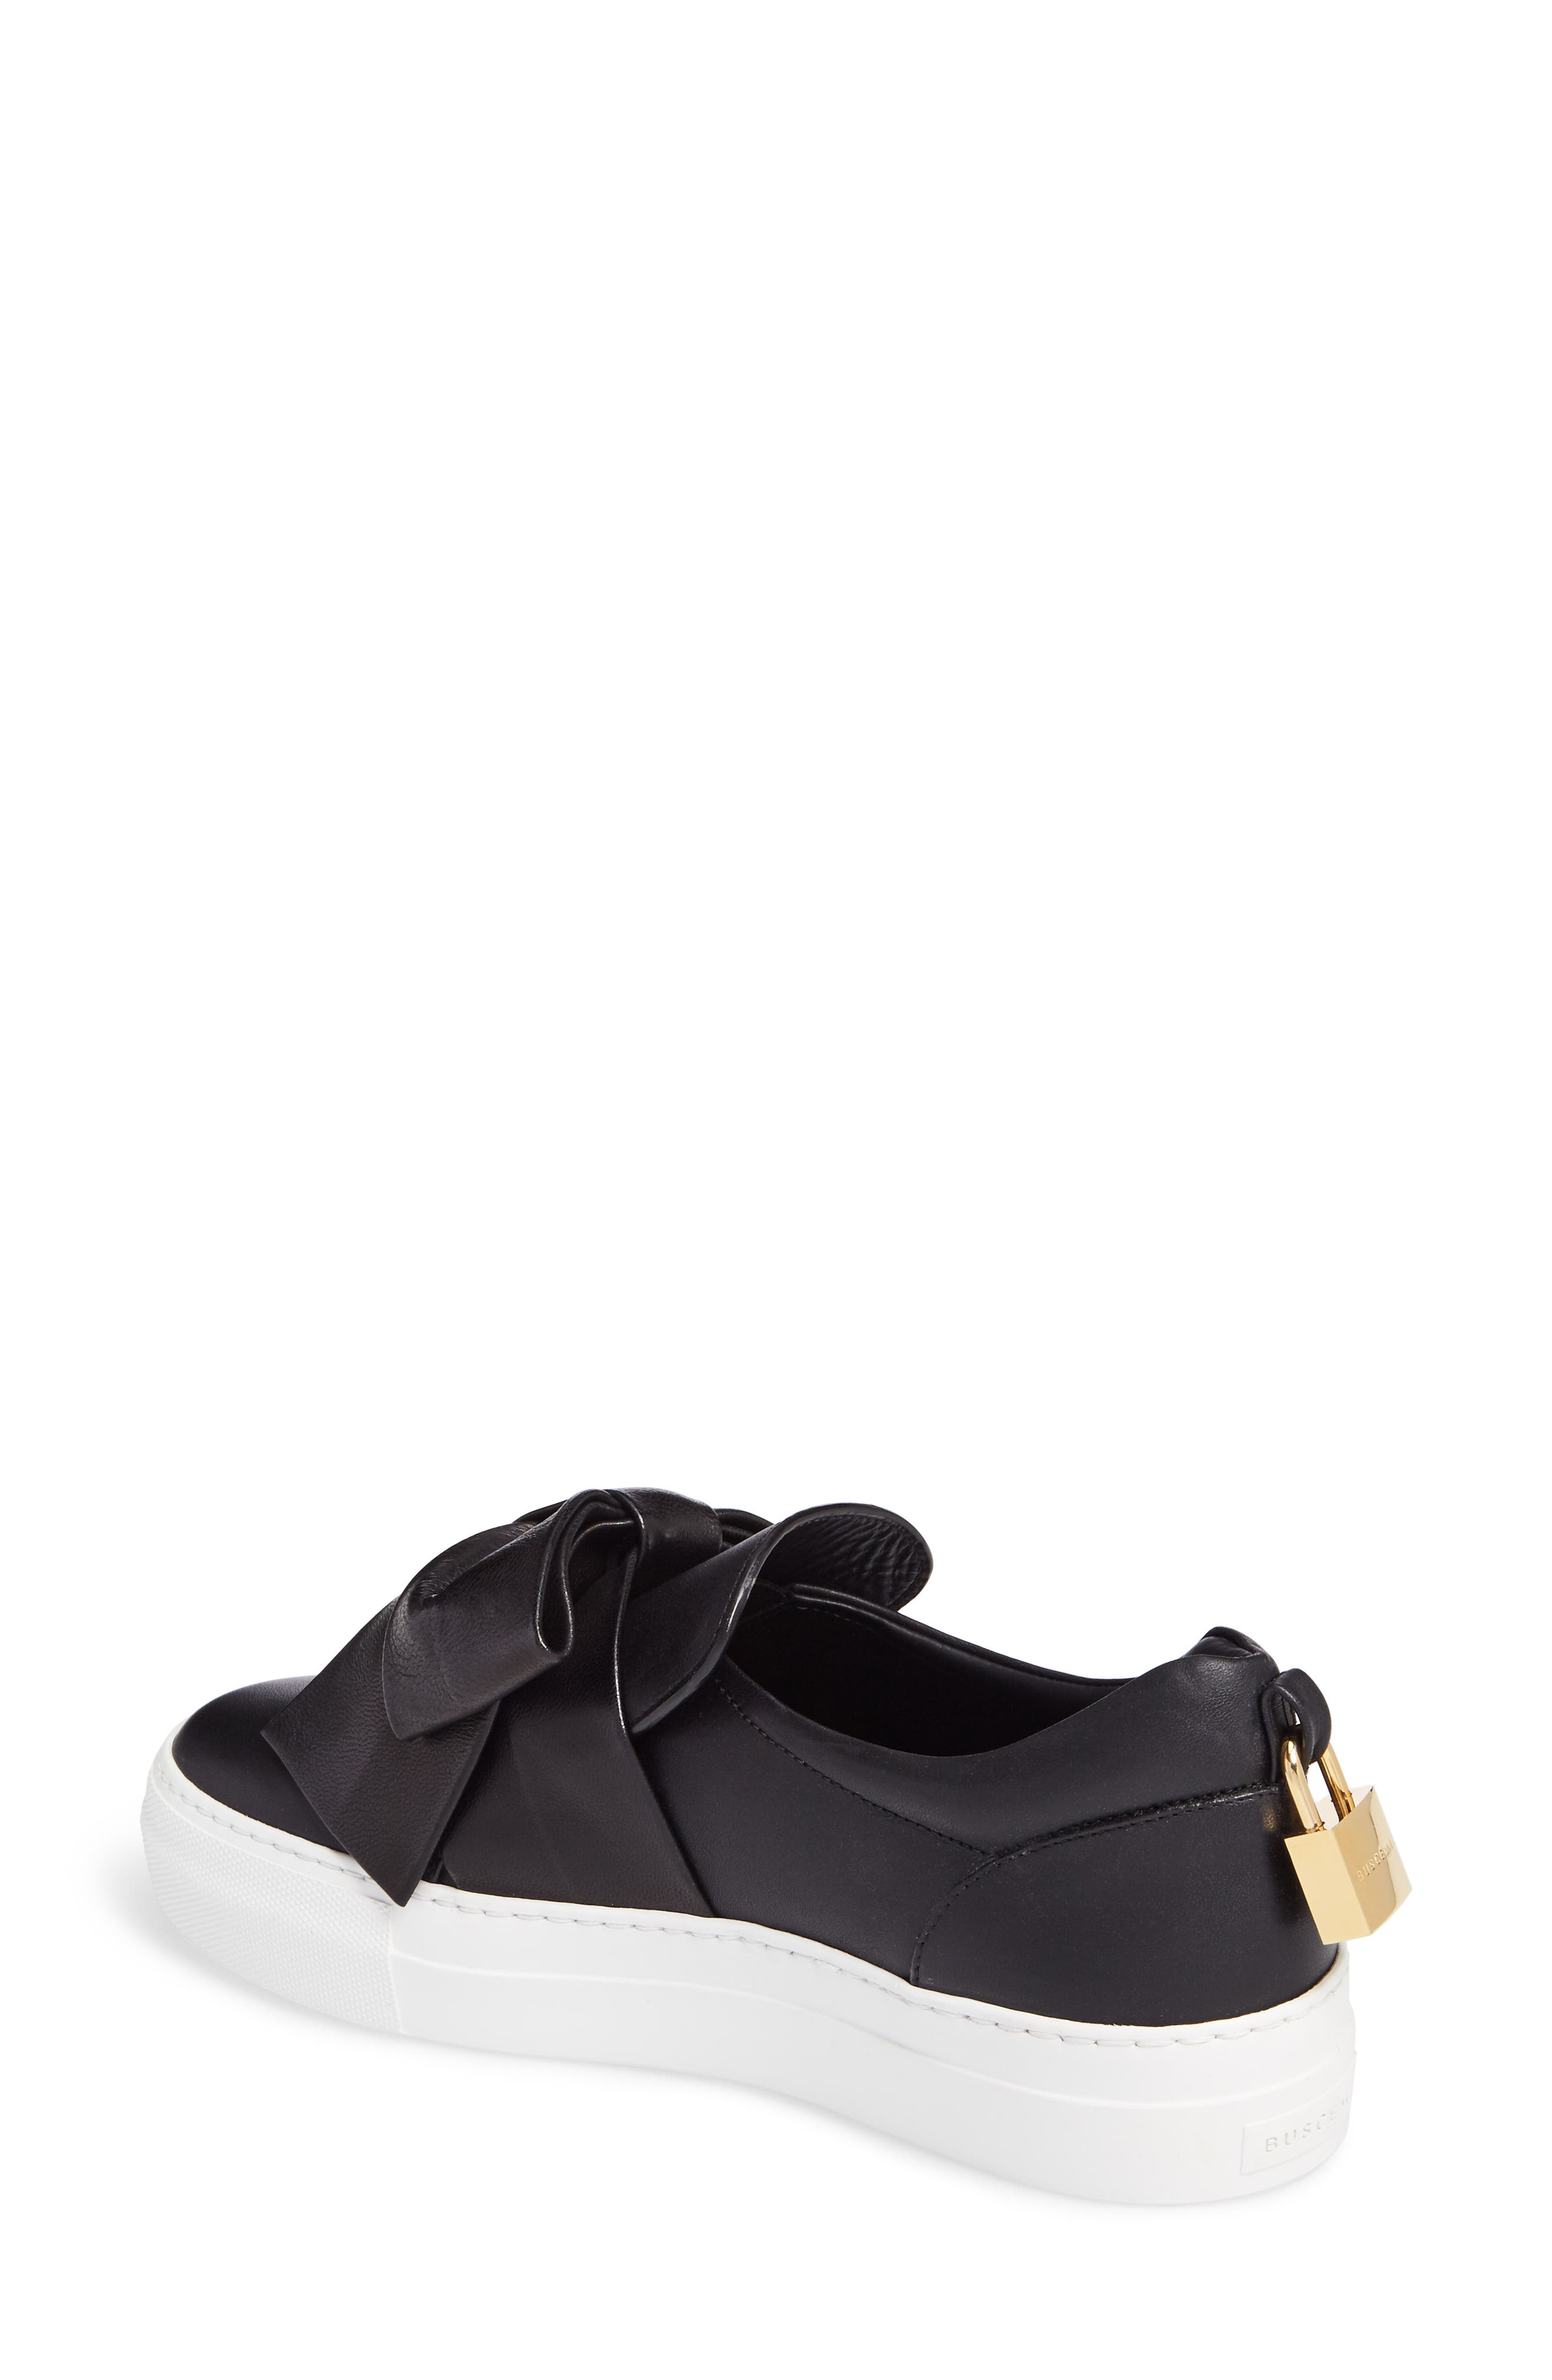 Alternate Image 2  - Buscemi Bow Slip-On Sneaker (Women)